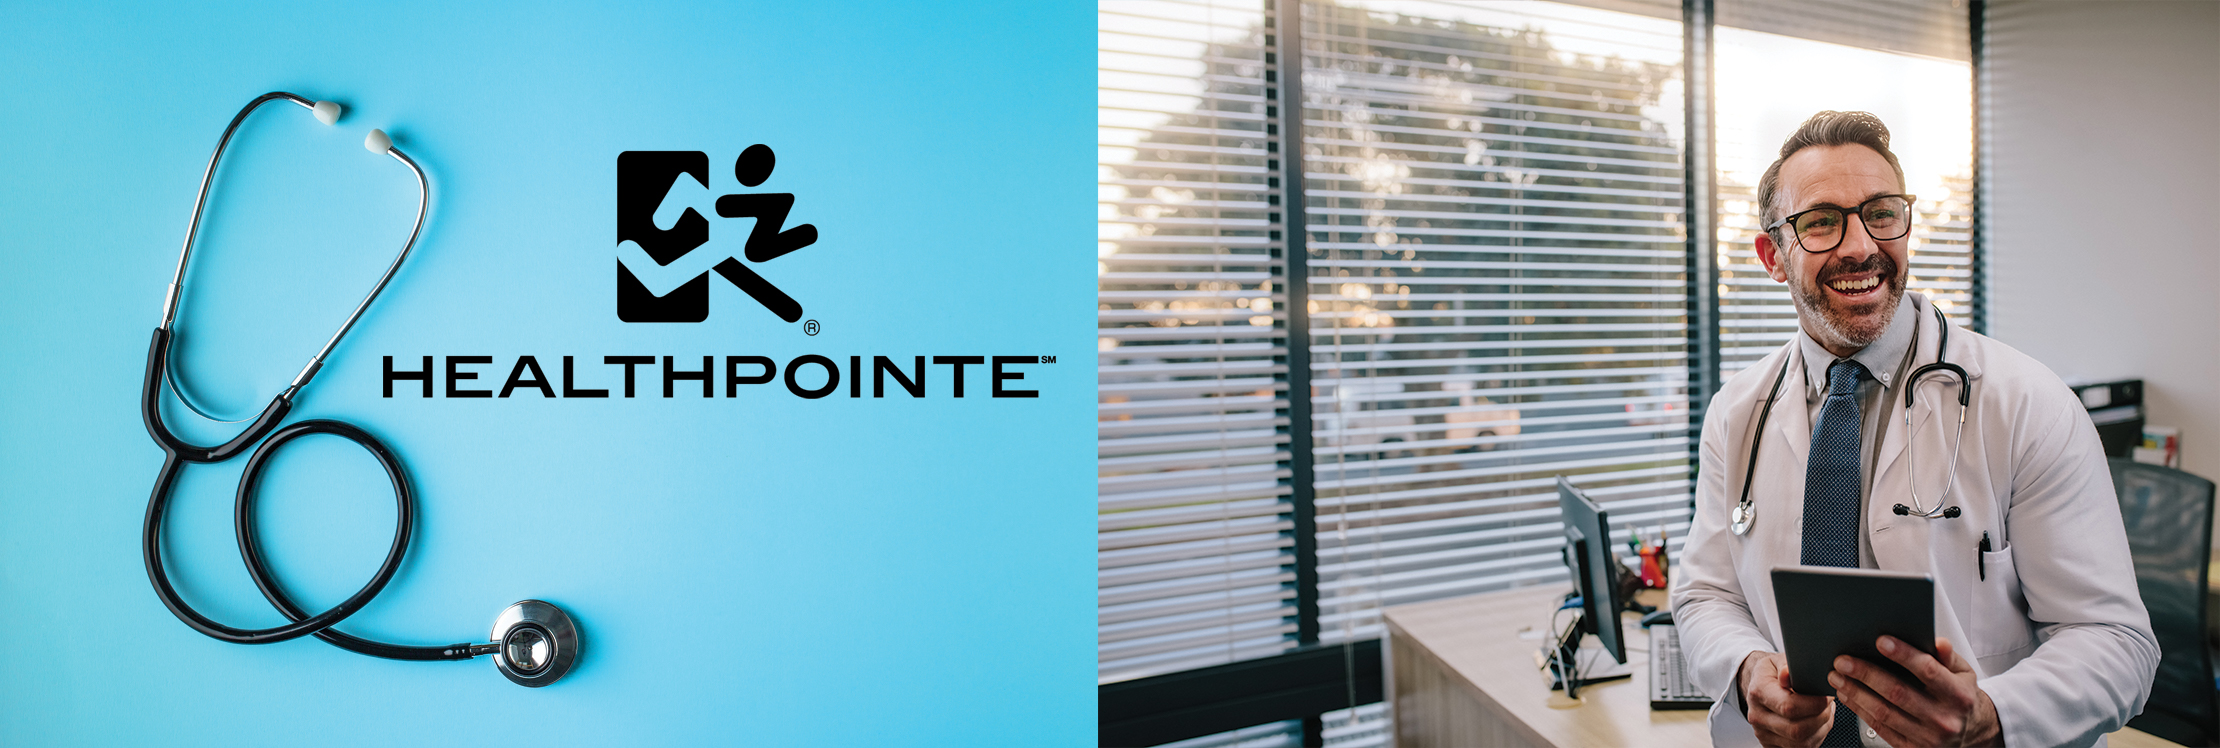 Healthpointe reviews | 5584 N Paramount Blvd - Long Beach CA